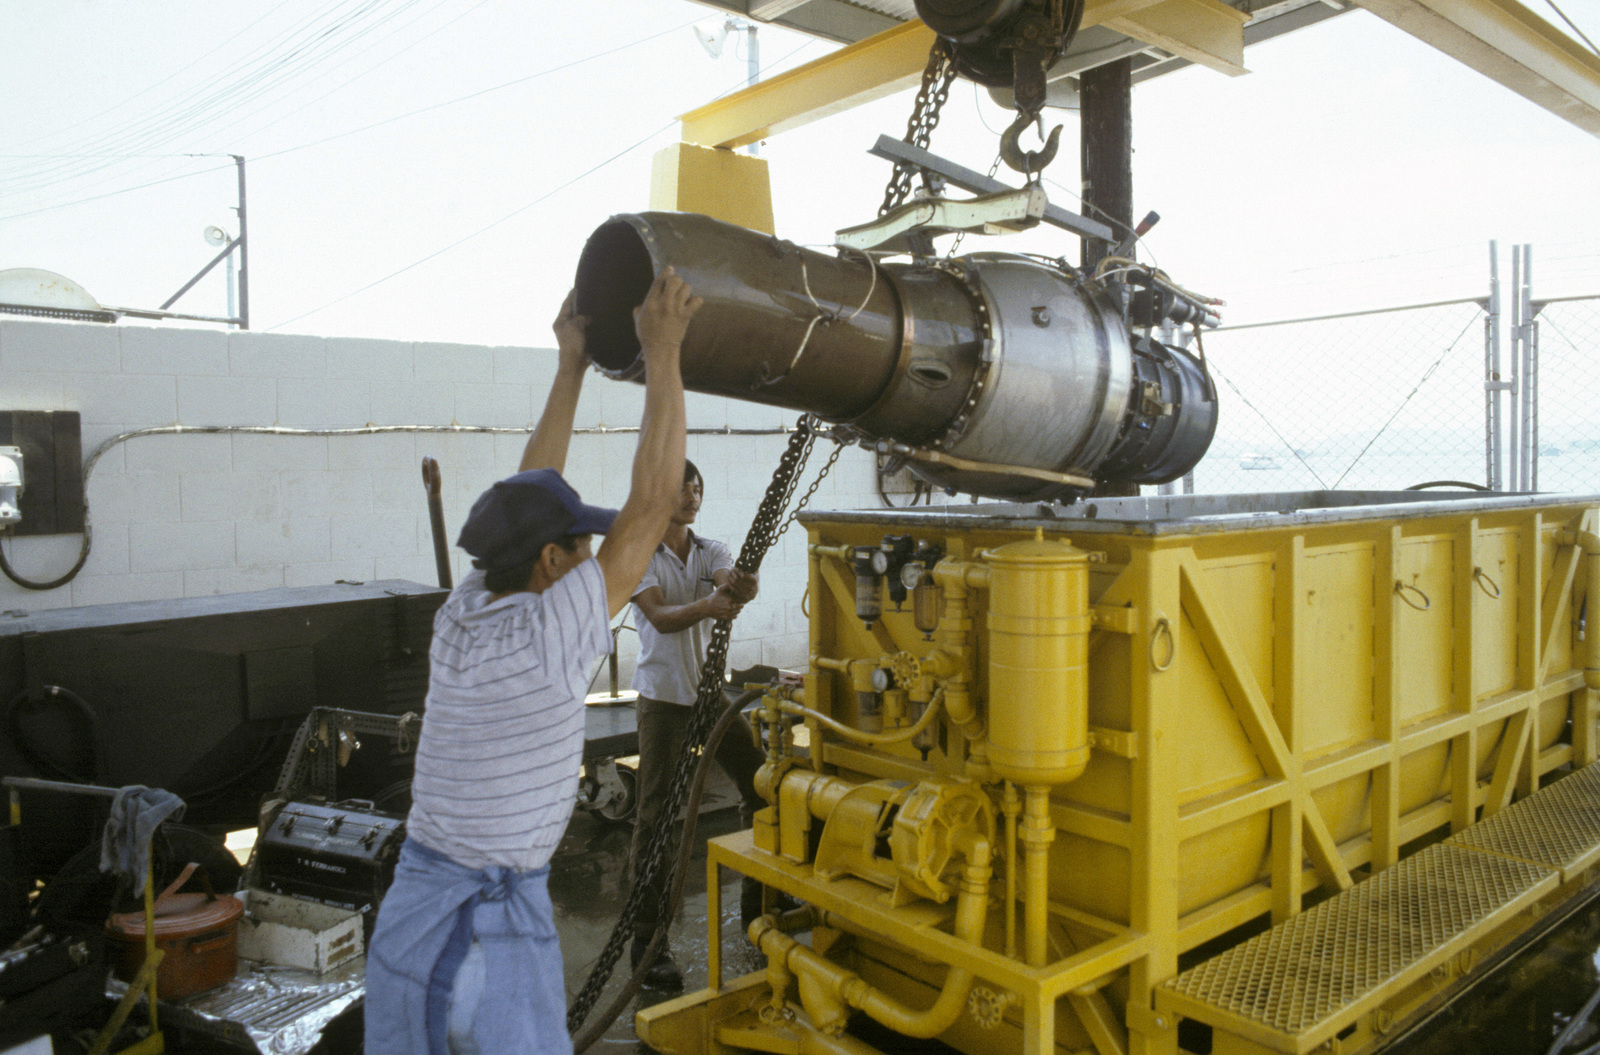 Teledyne Ryan technicians hoist the engine of a BQM-34